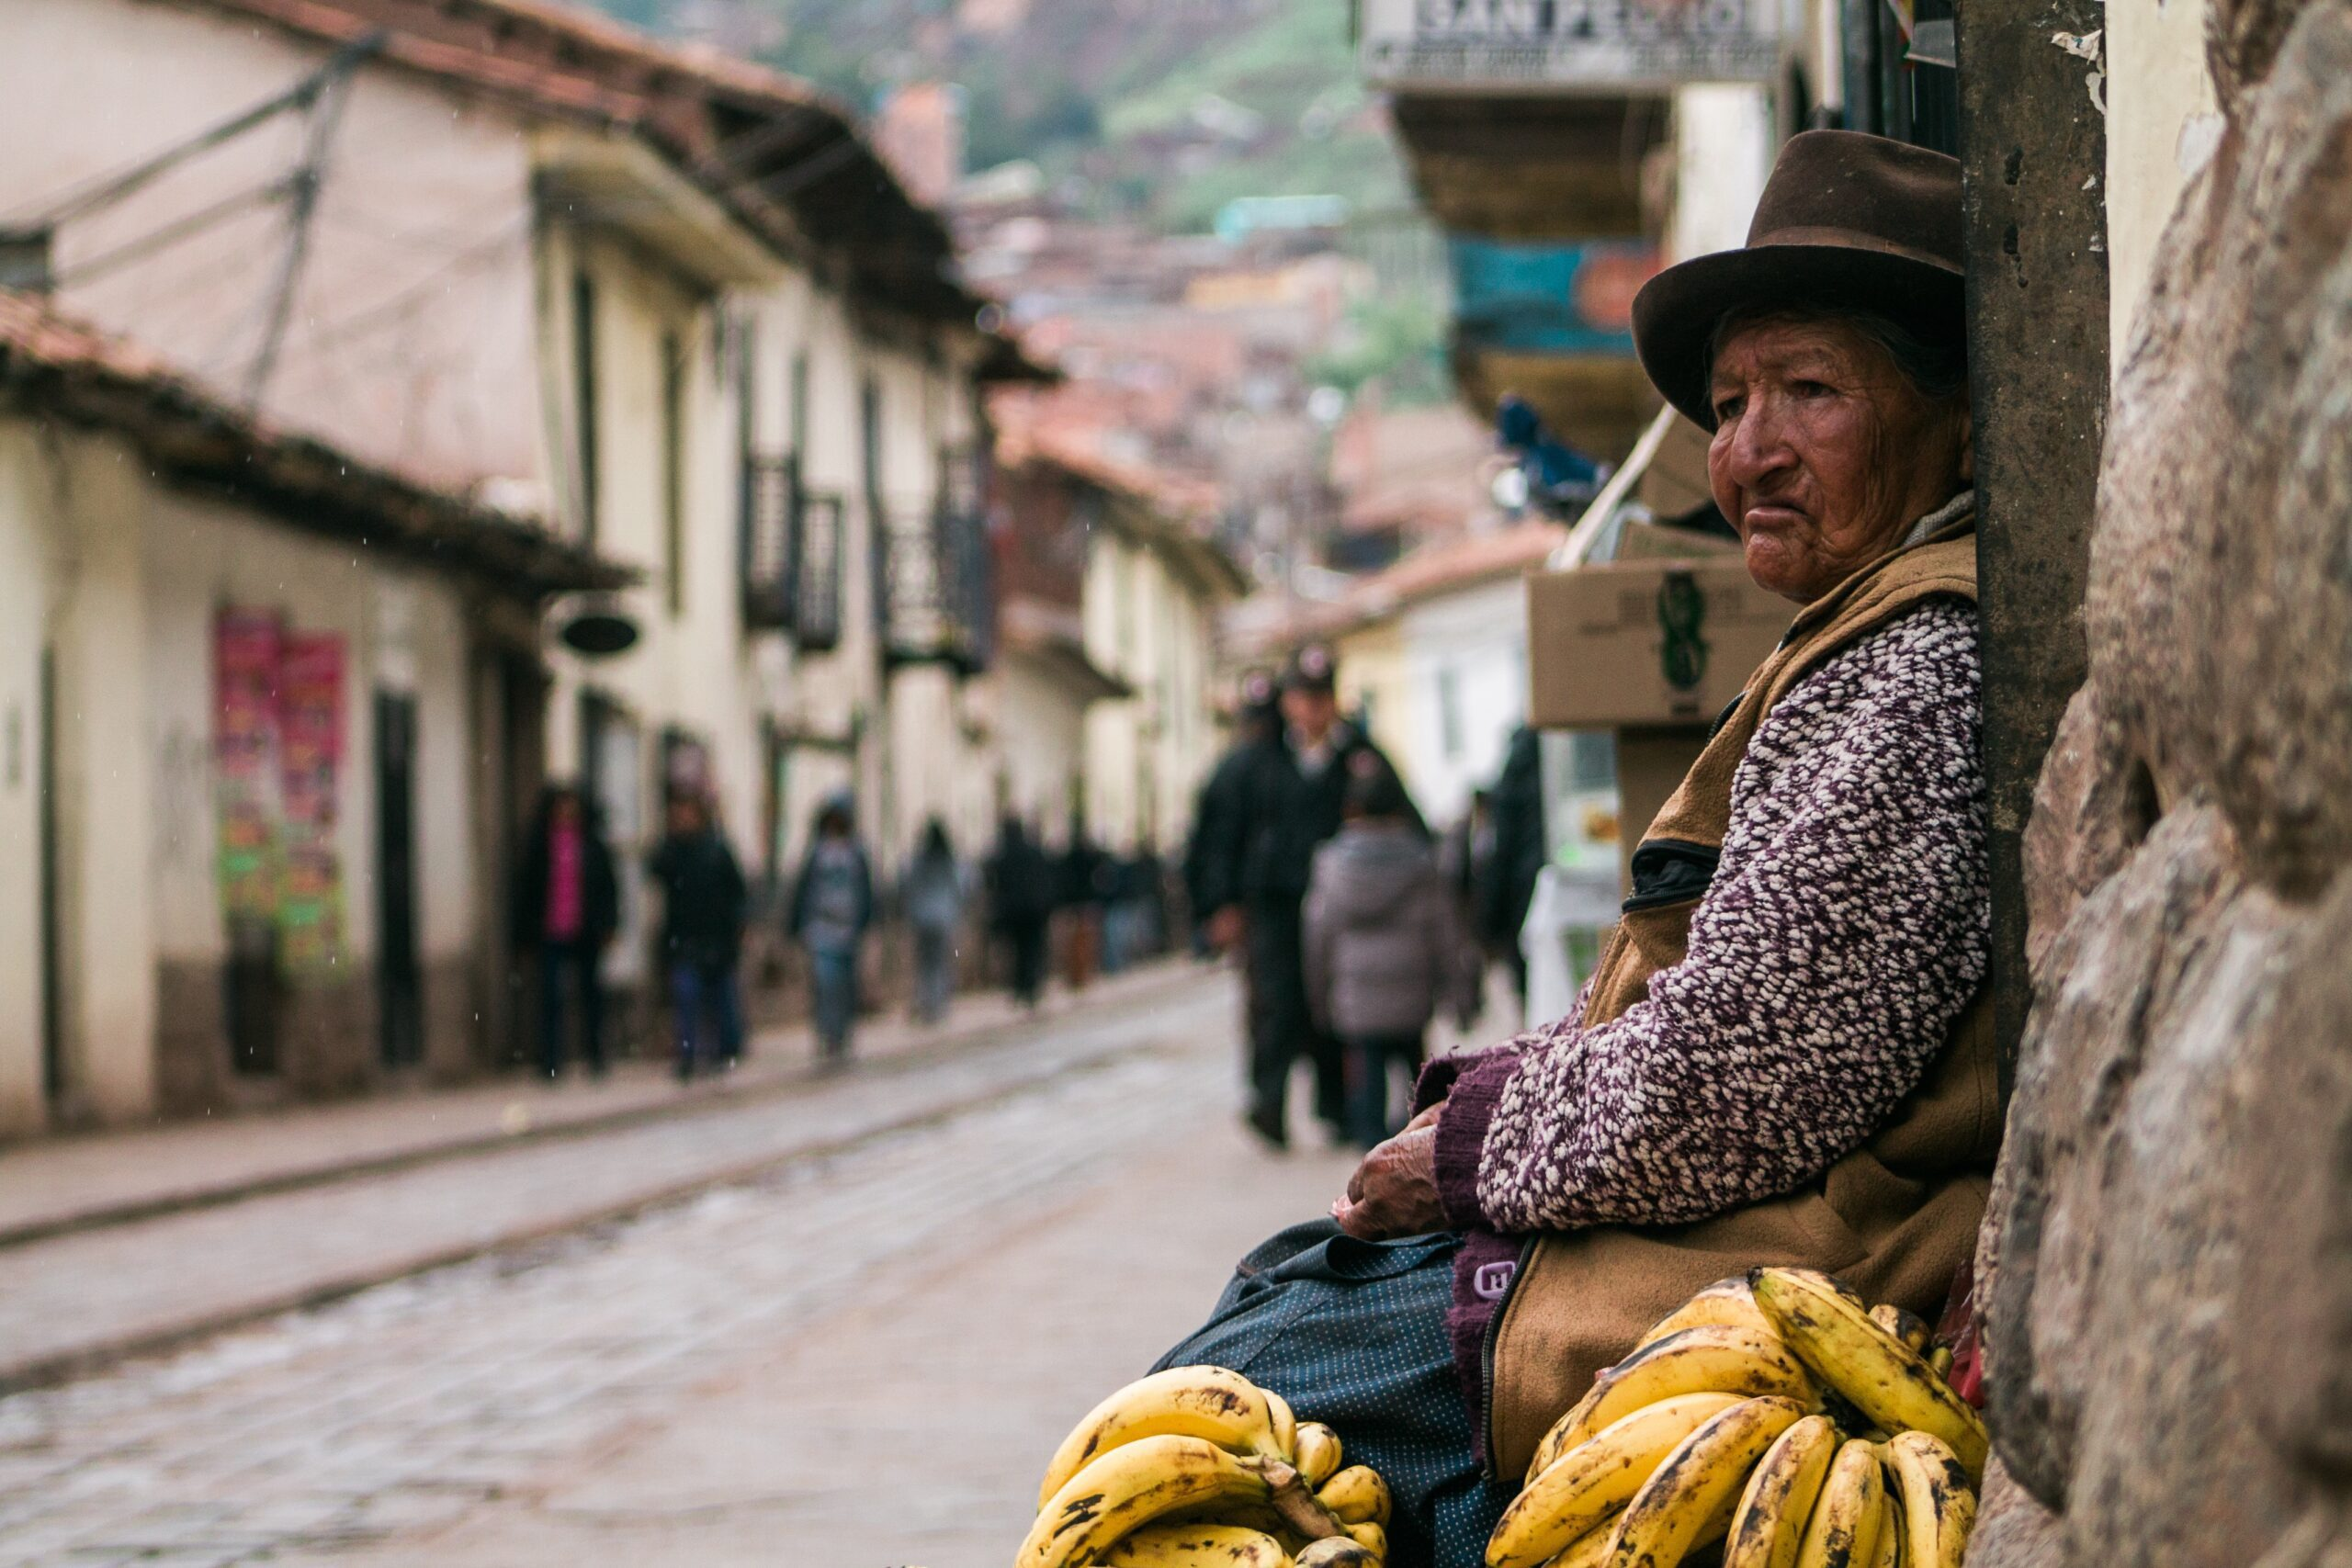 Peruvian woman sitting on side of street in cusco with bananas